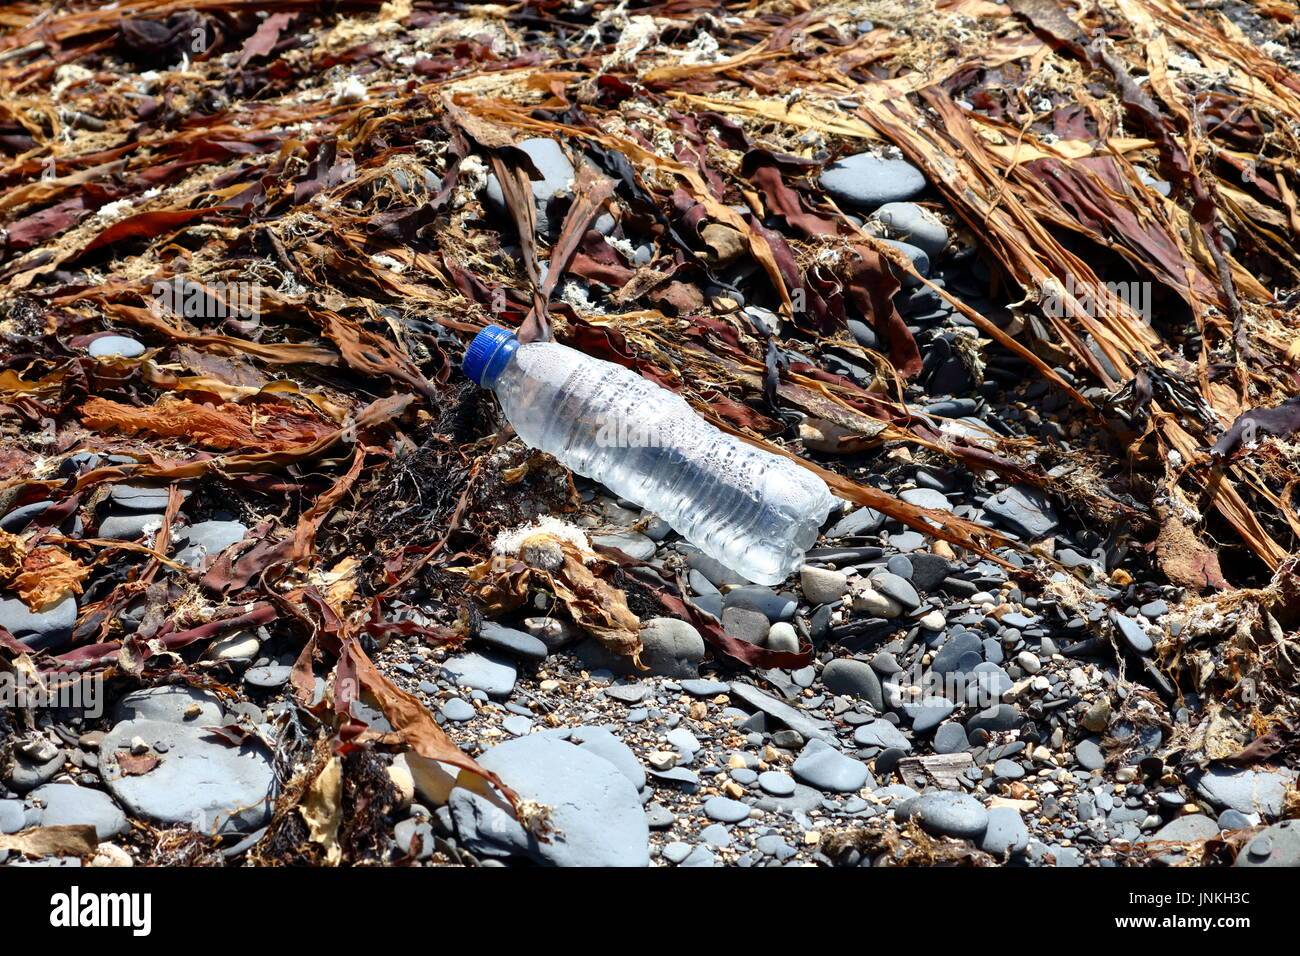 Plastic container amidst kelp seaweed and shale washed up on beach in Dorset UK - Stock Image